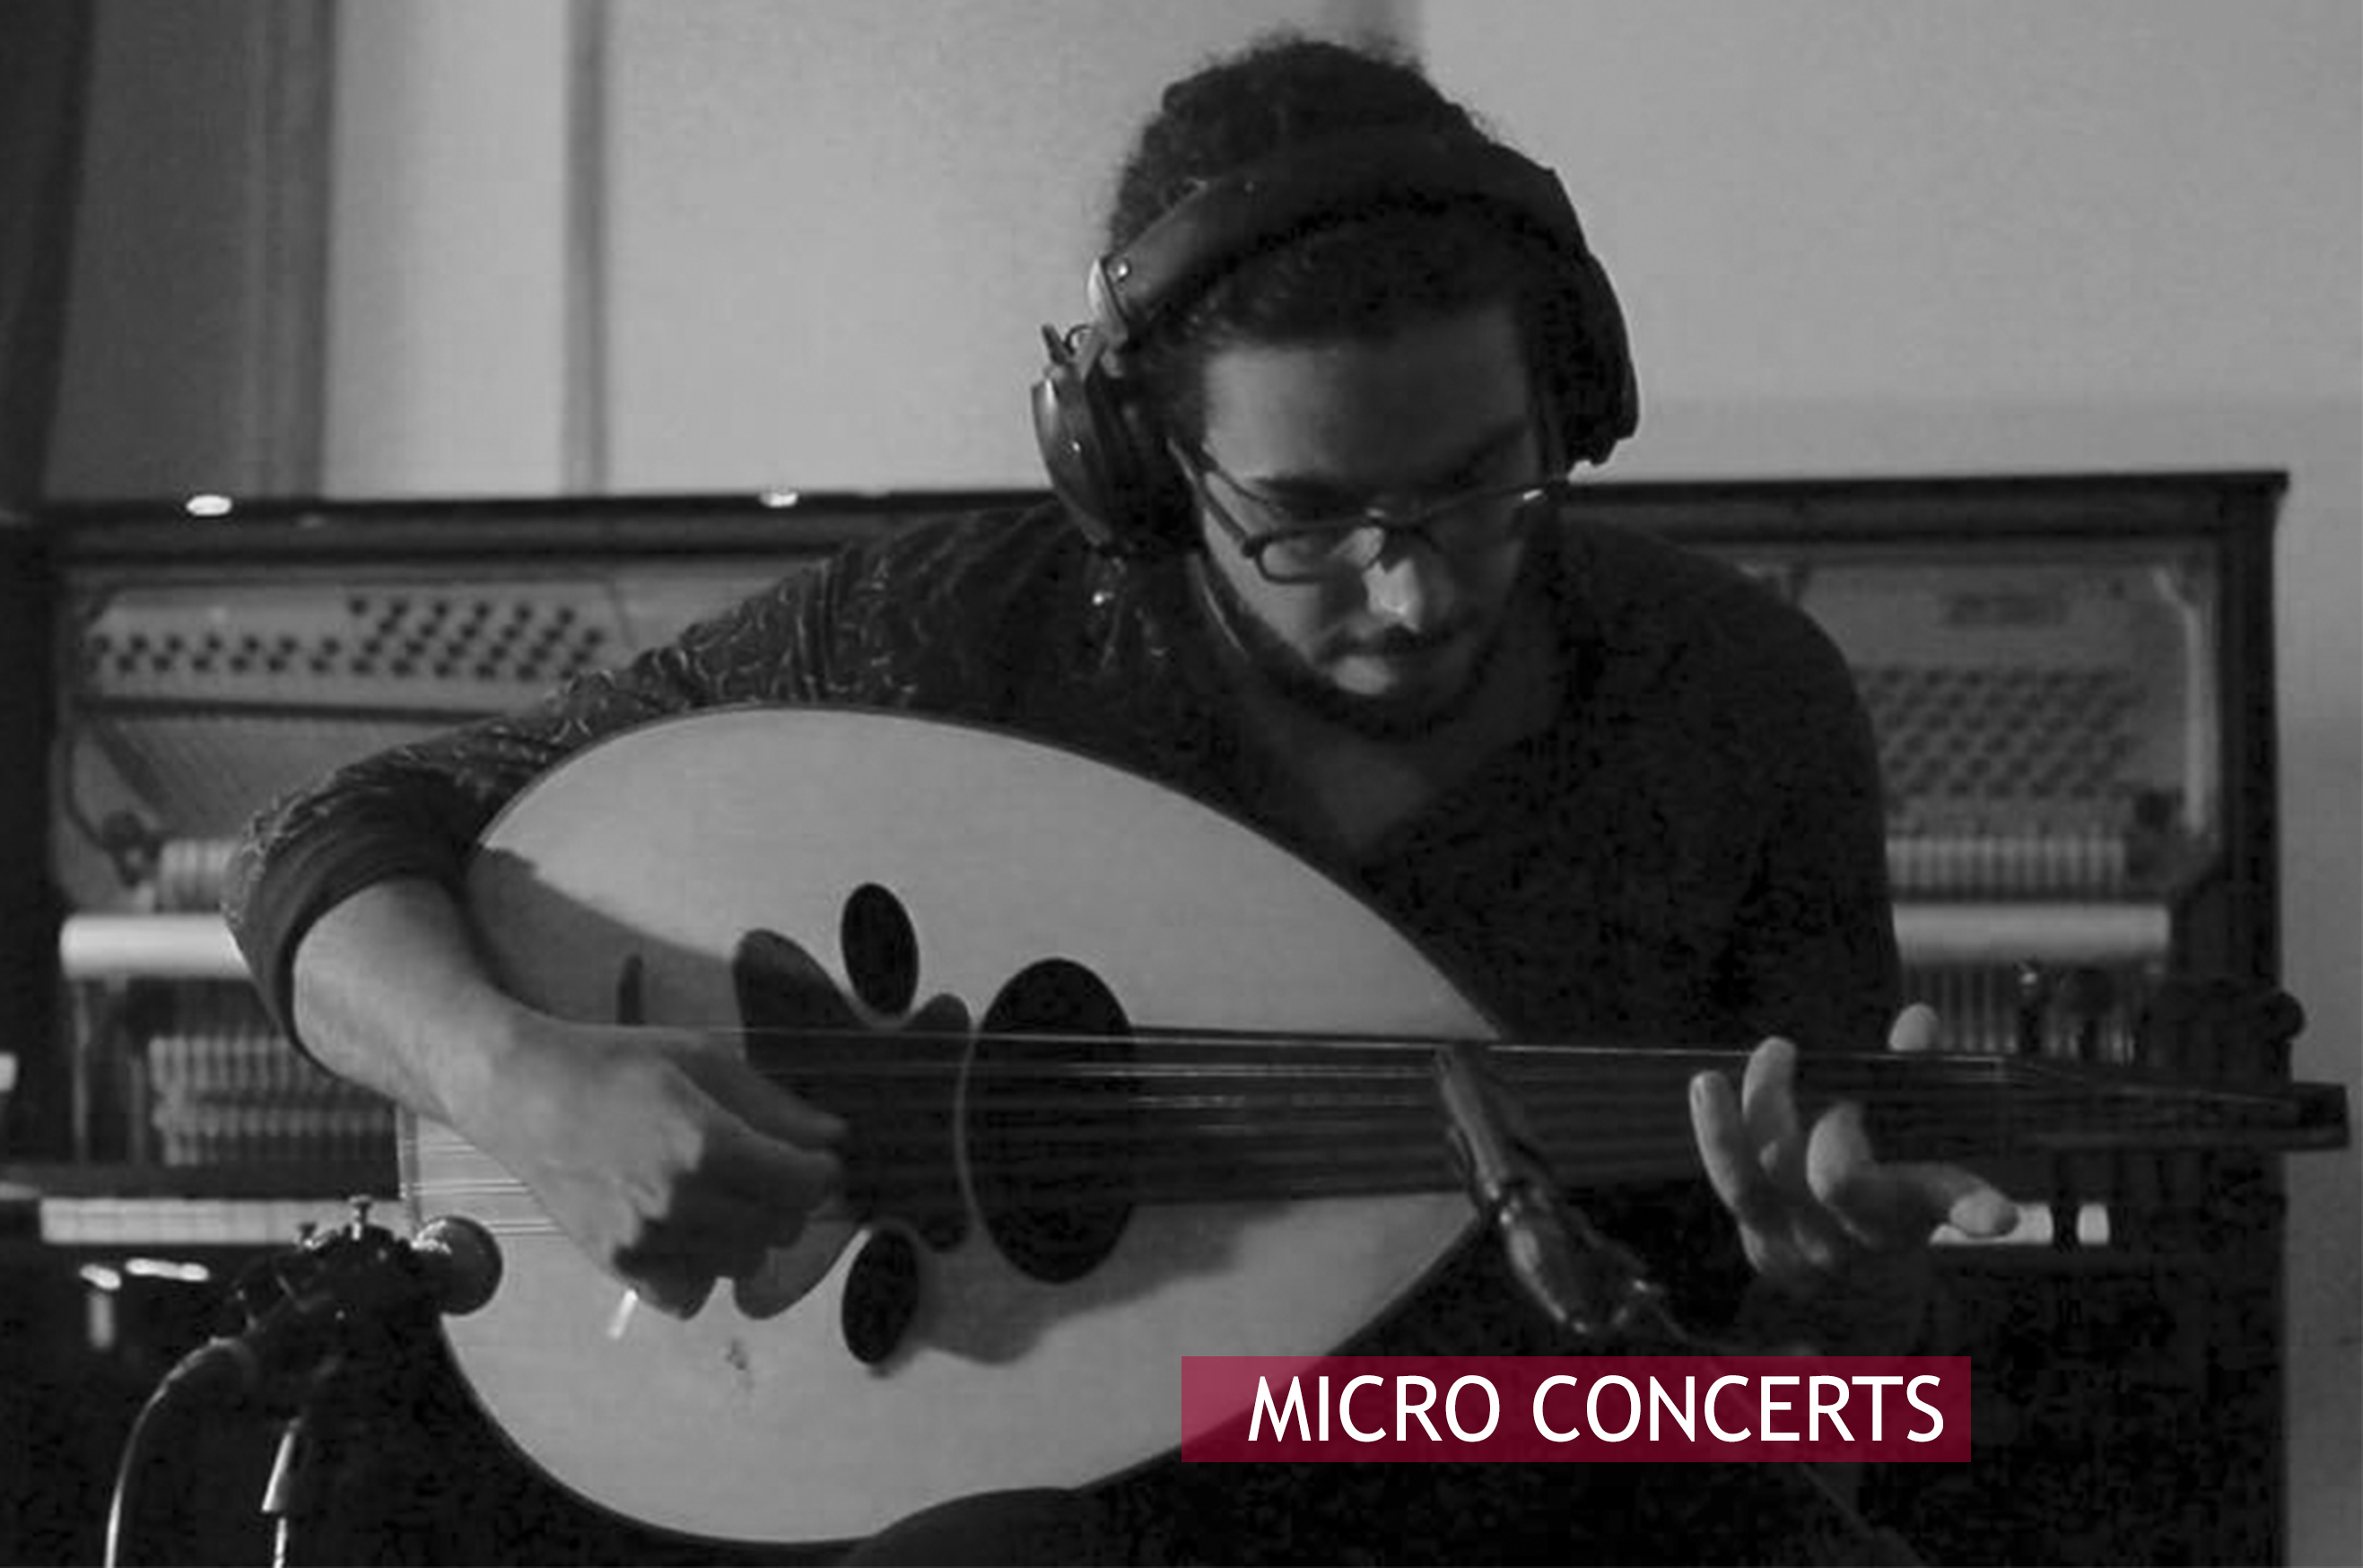 MICRO CONCERTS